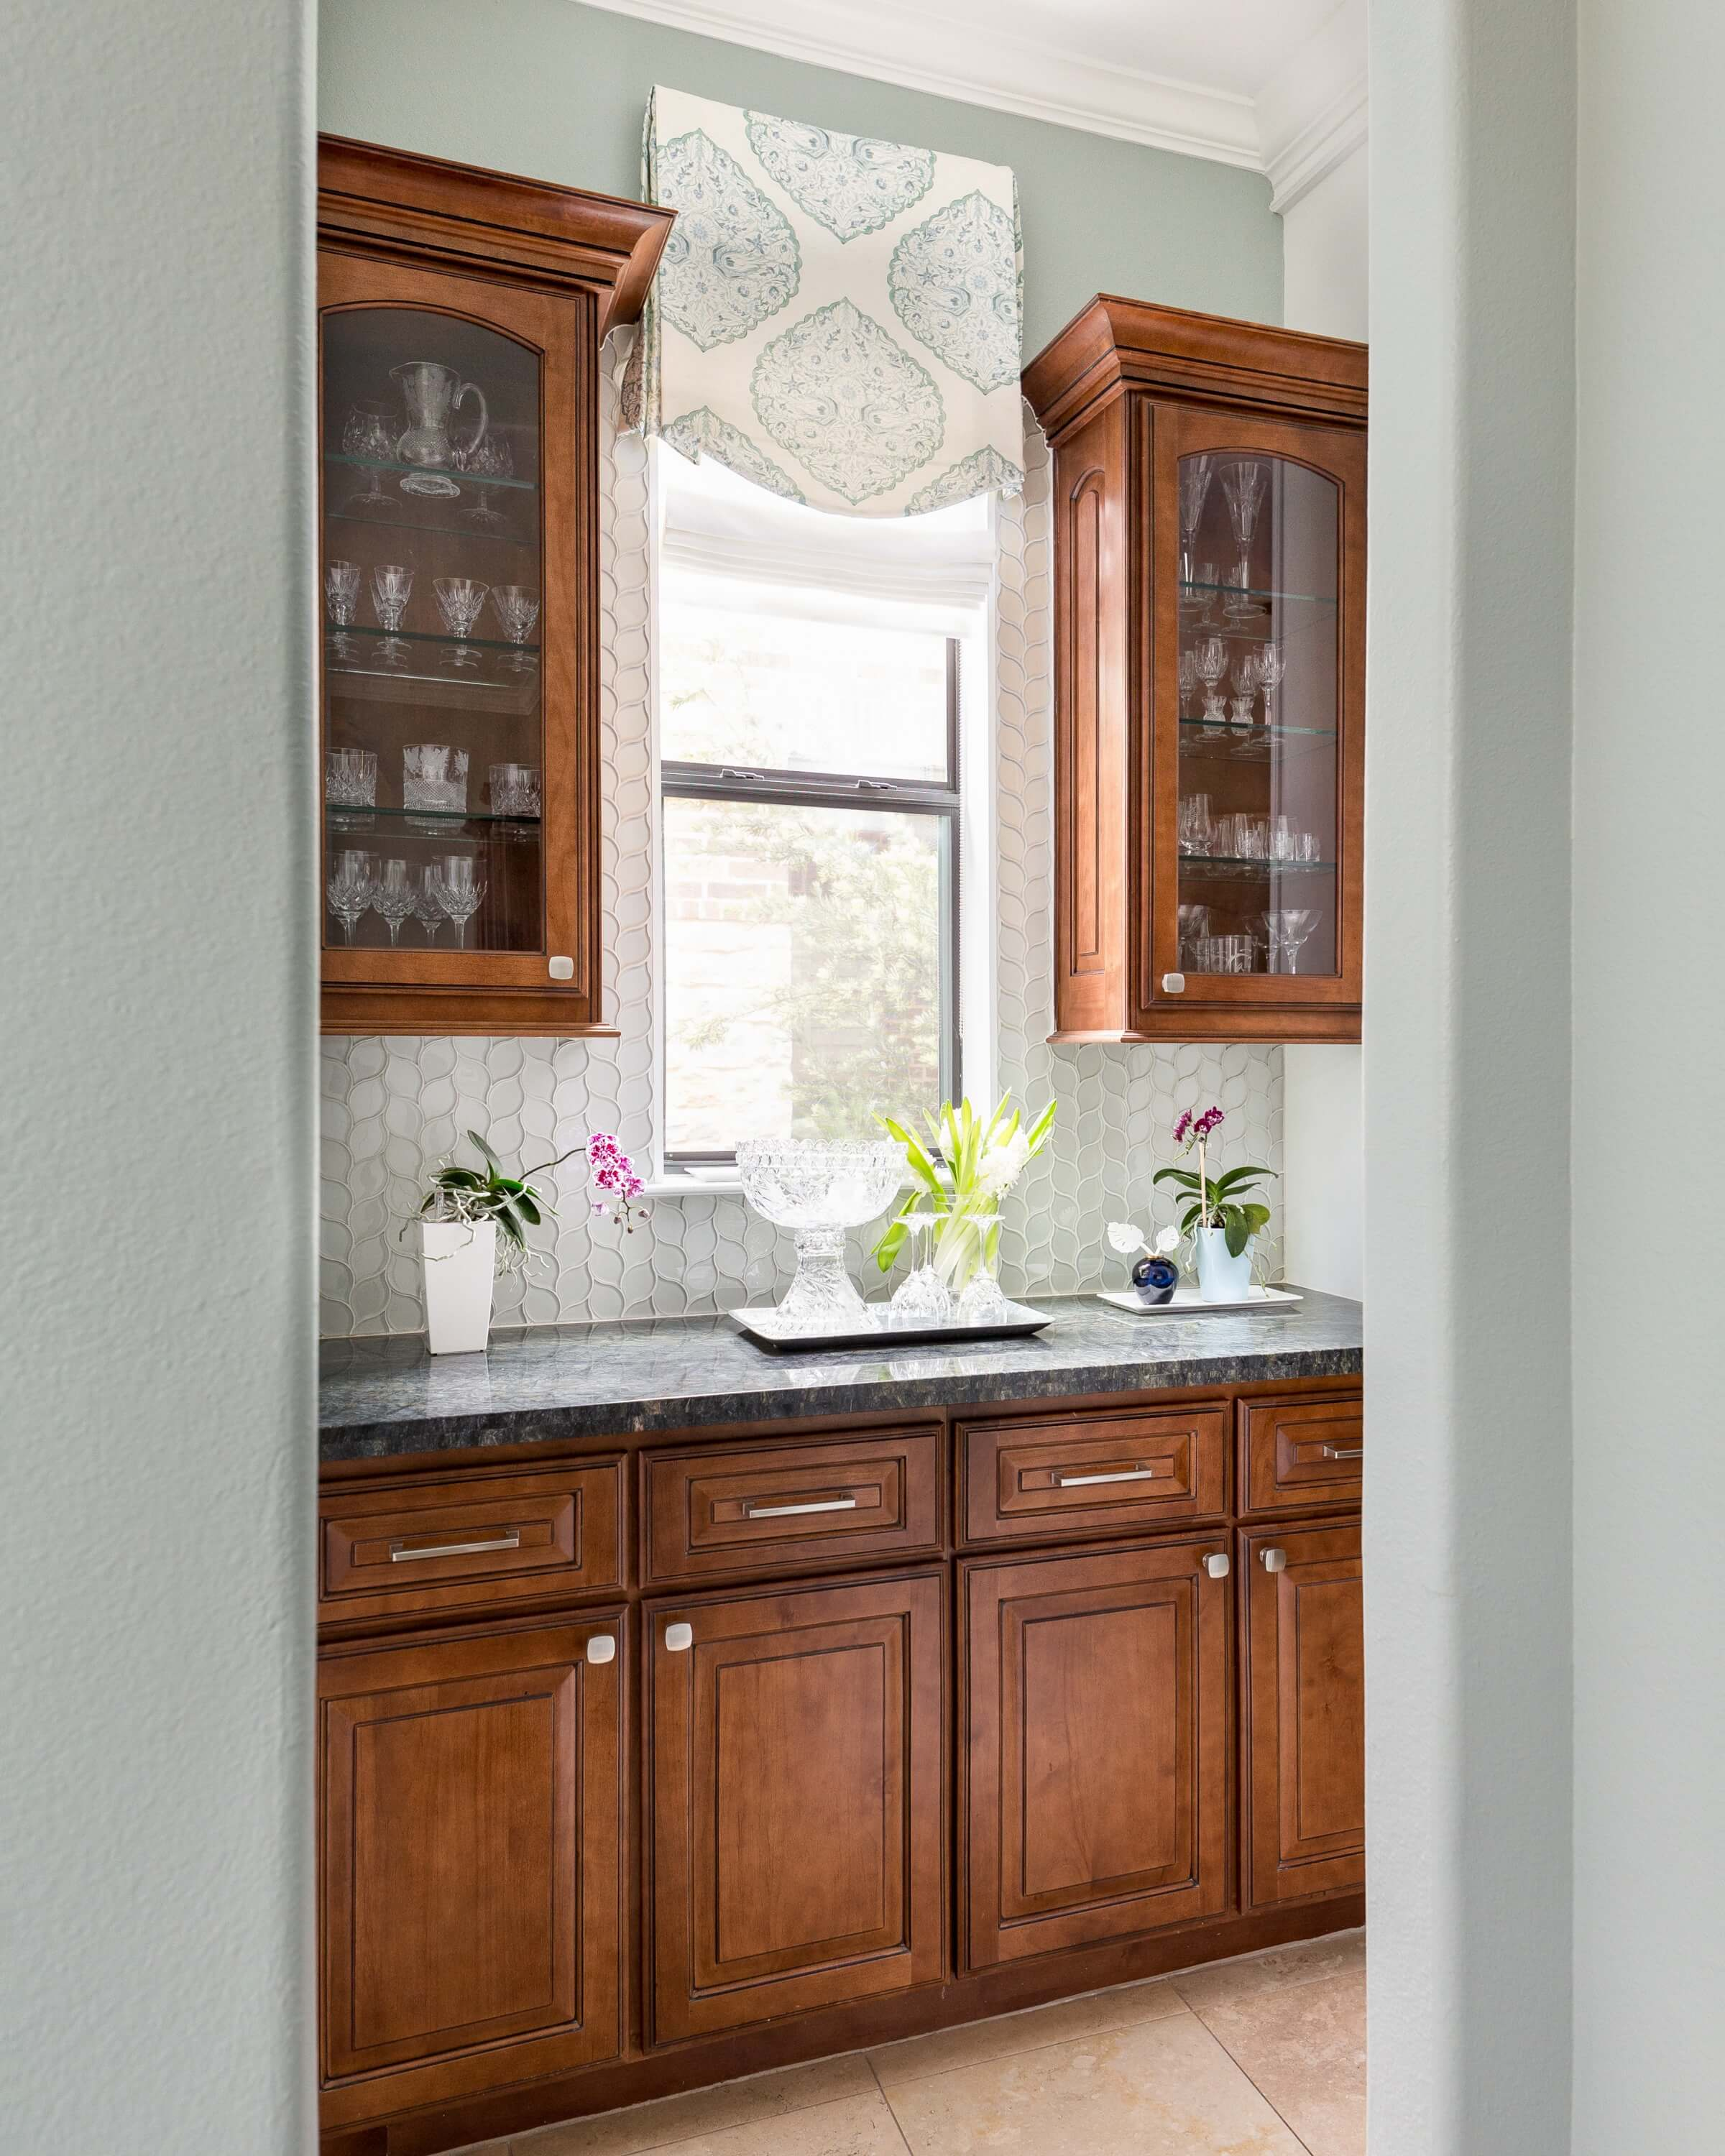 Coastal style kitchen makeover with wood cabinets and glass tile in Butler's Pantry - Carla Aston, Designer | Colleen Scott, Photographer | #turquoisekitchen #coastalkitchen #openshelves